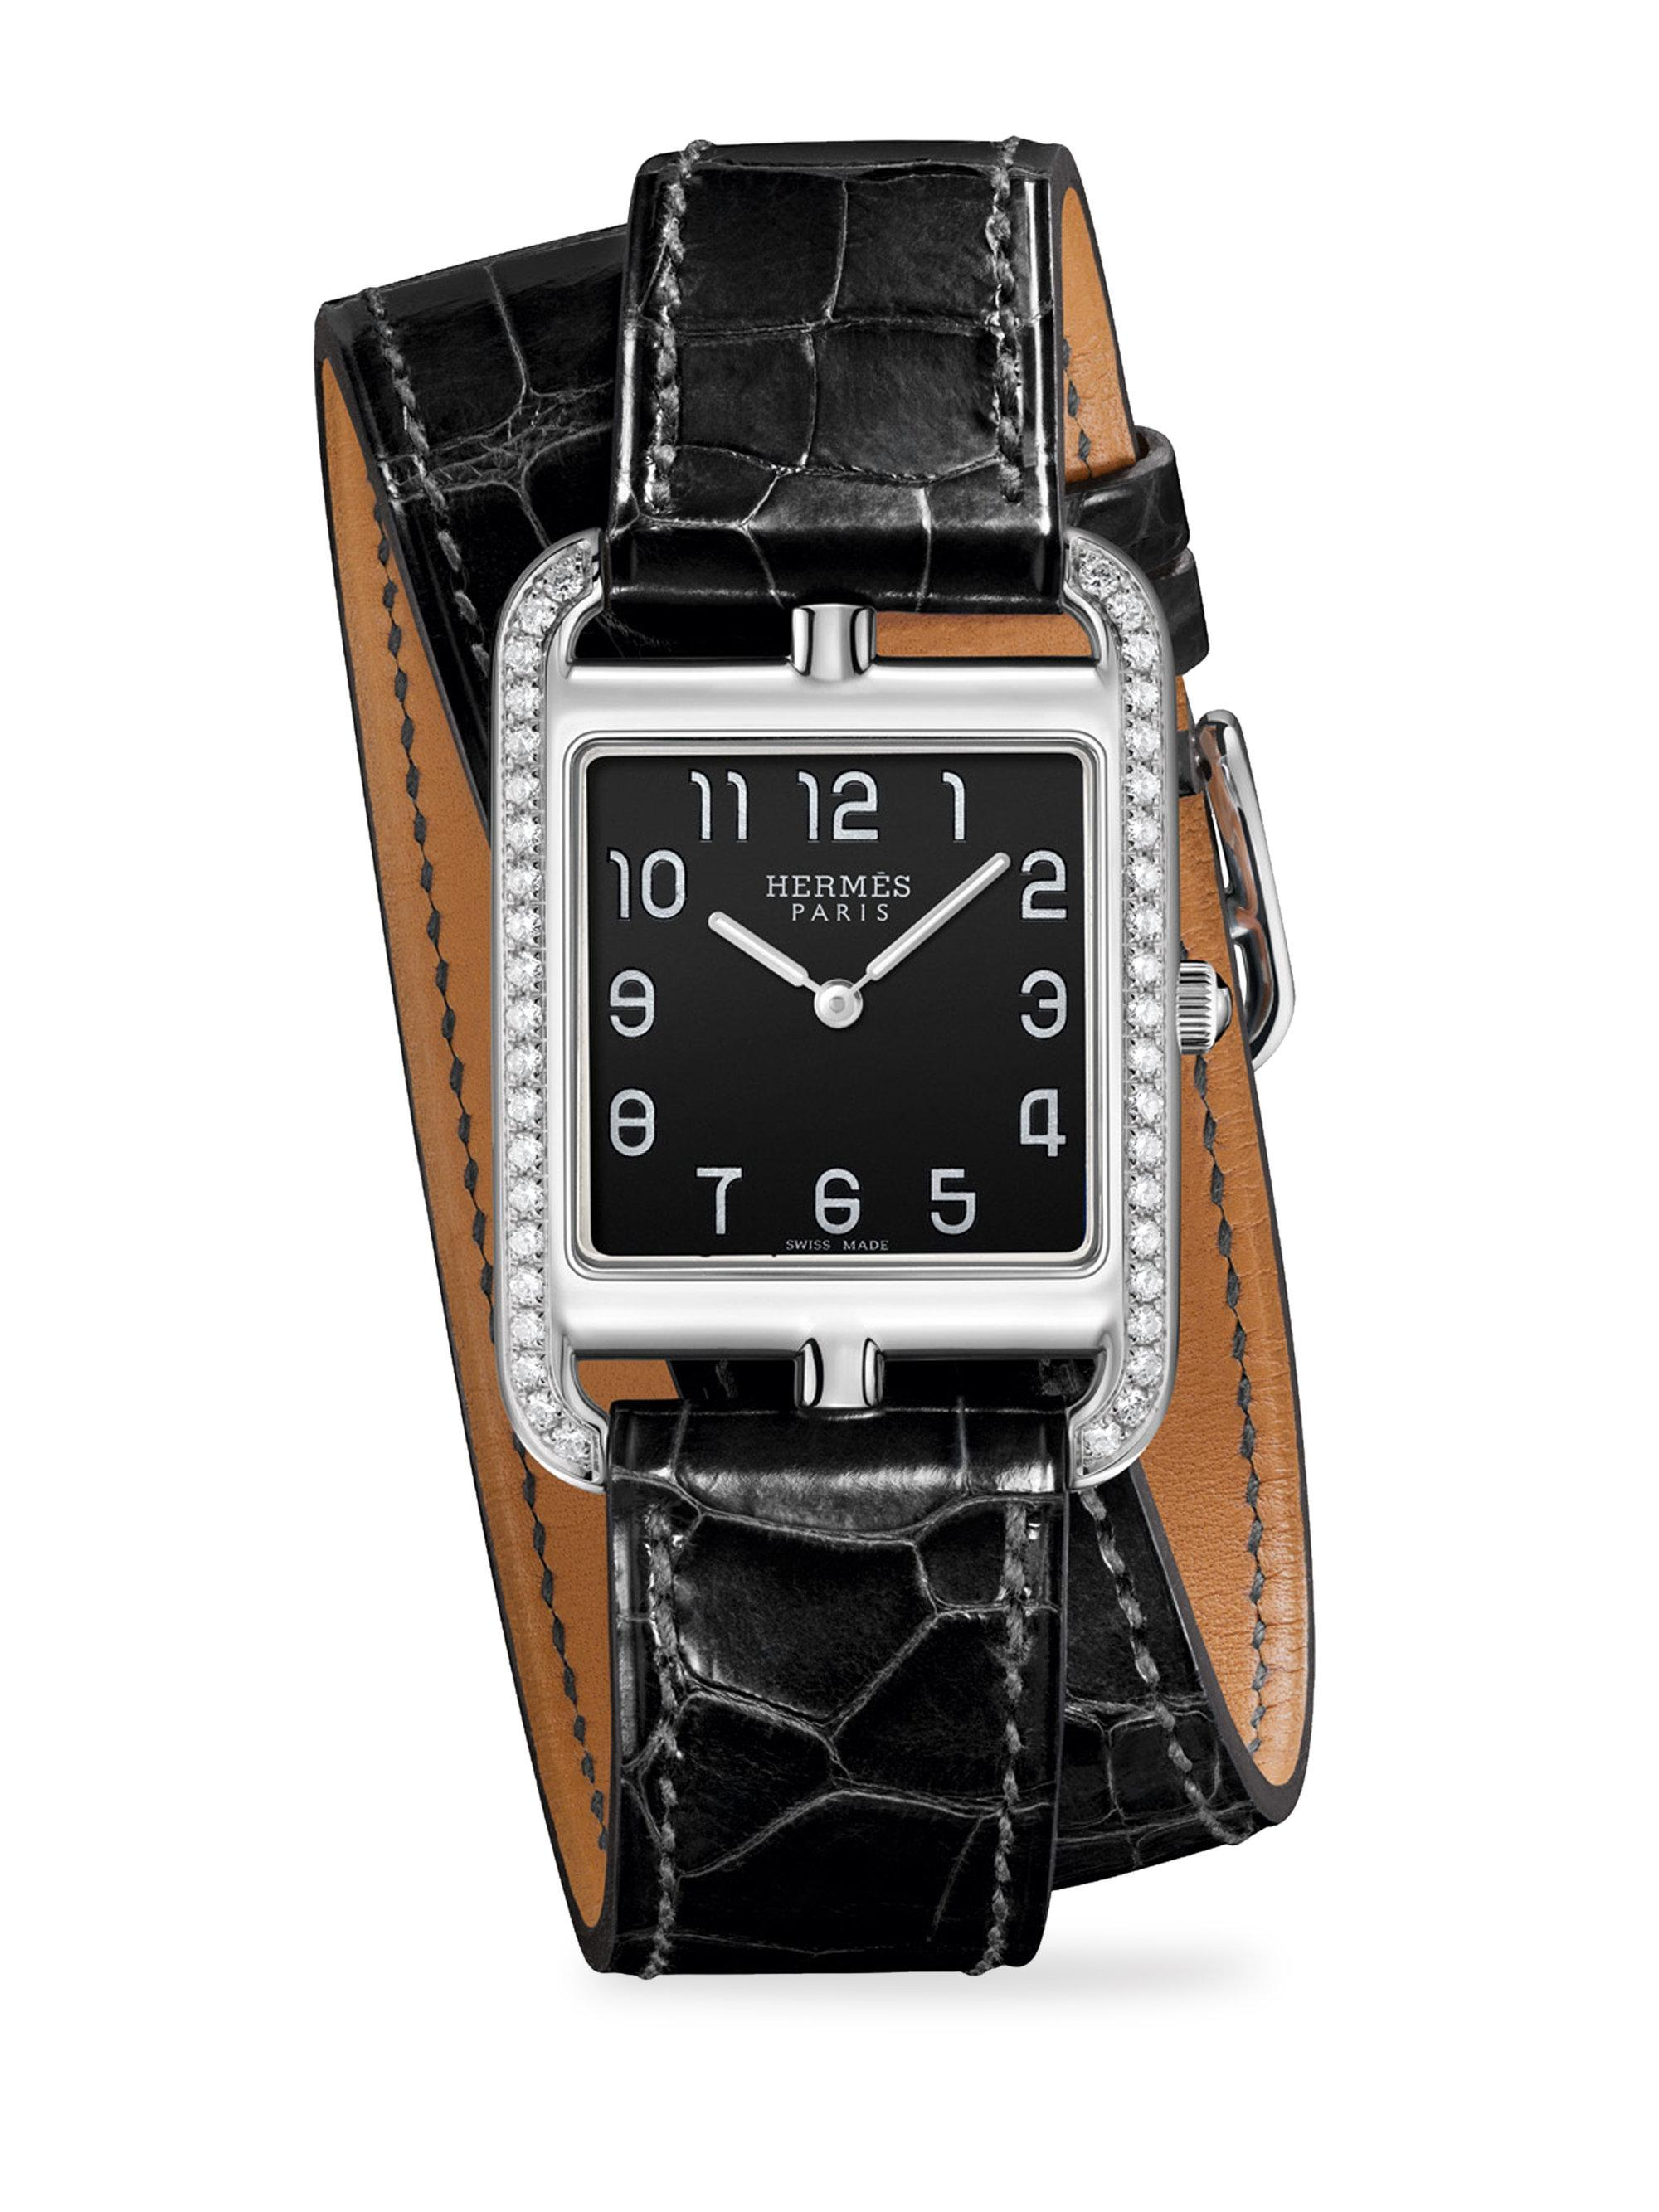 herm retrograde watches s hermes in southampton moonphase calendar dressage